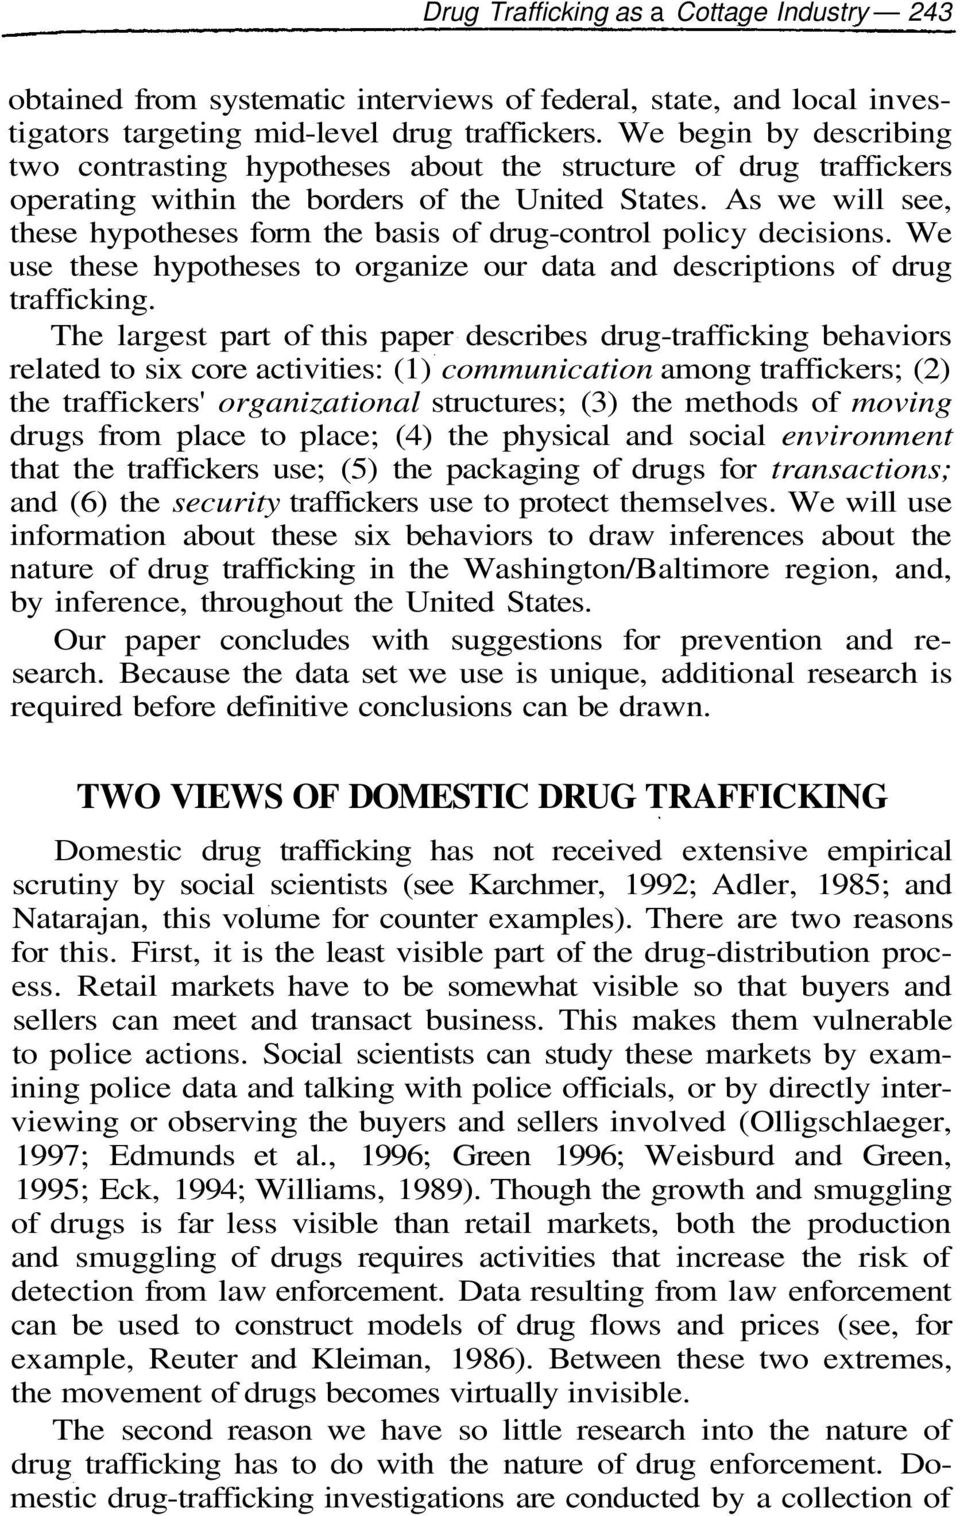 As we will see, these hypotheses form the basis of drug-control policy decisions. We use these hypotheses to organize our data and descriptions of drug trafficking.